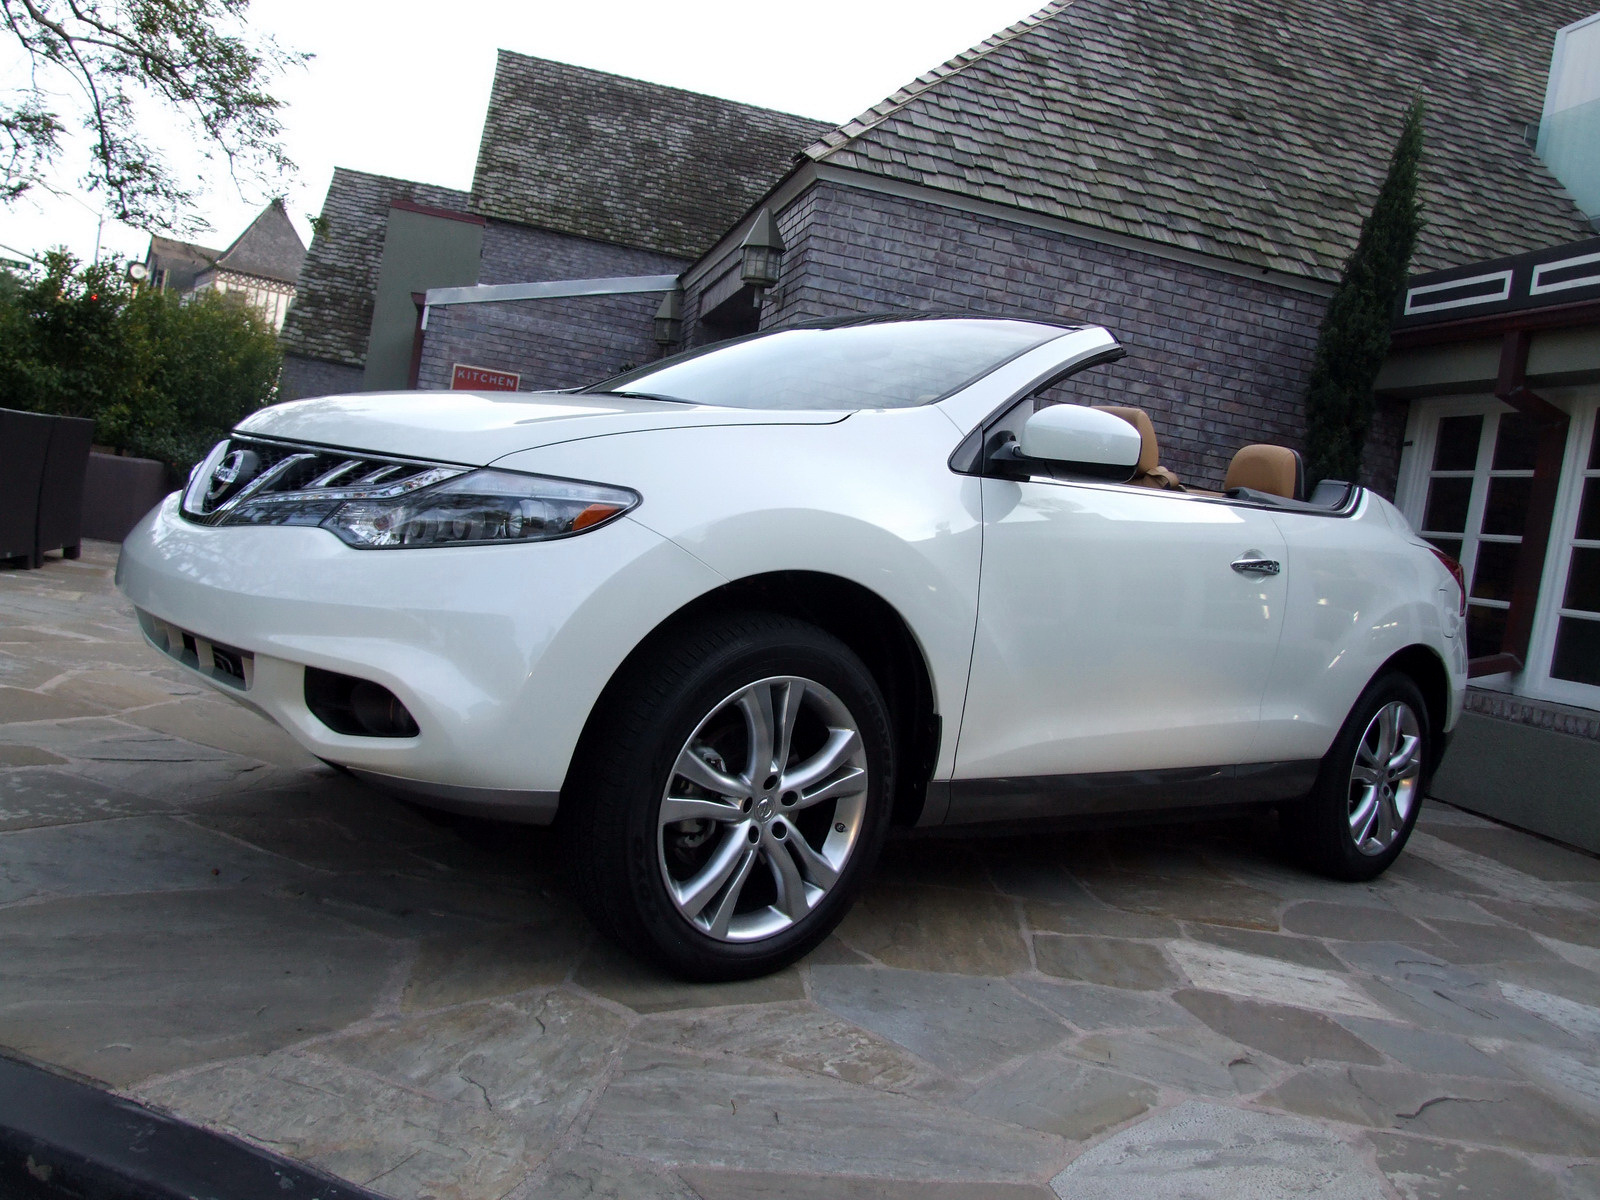 2010 - [Nissan] Murano CrossCabriolet - Page 4 2011-Nissan-Murano-CC-TD-630